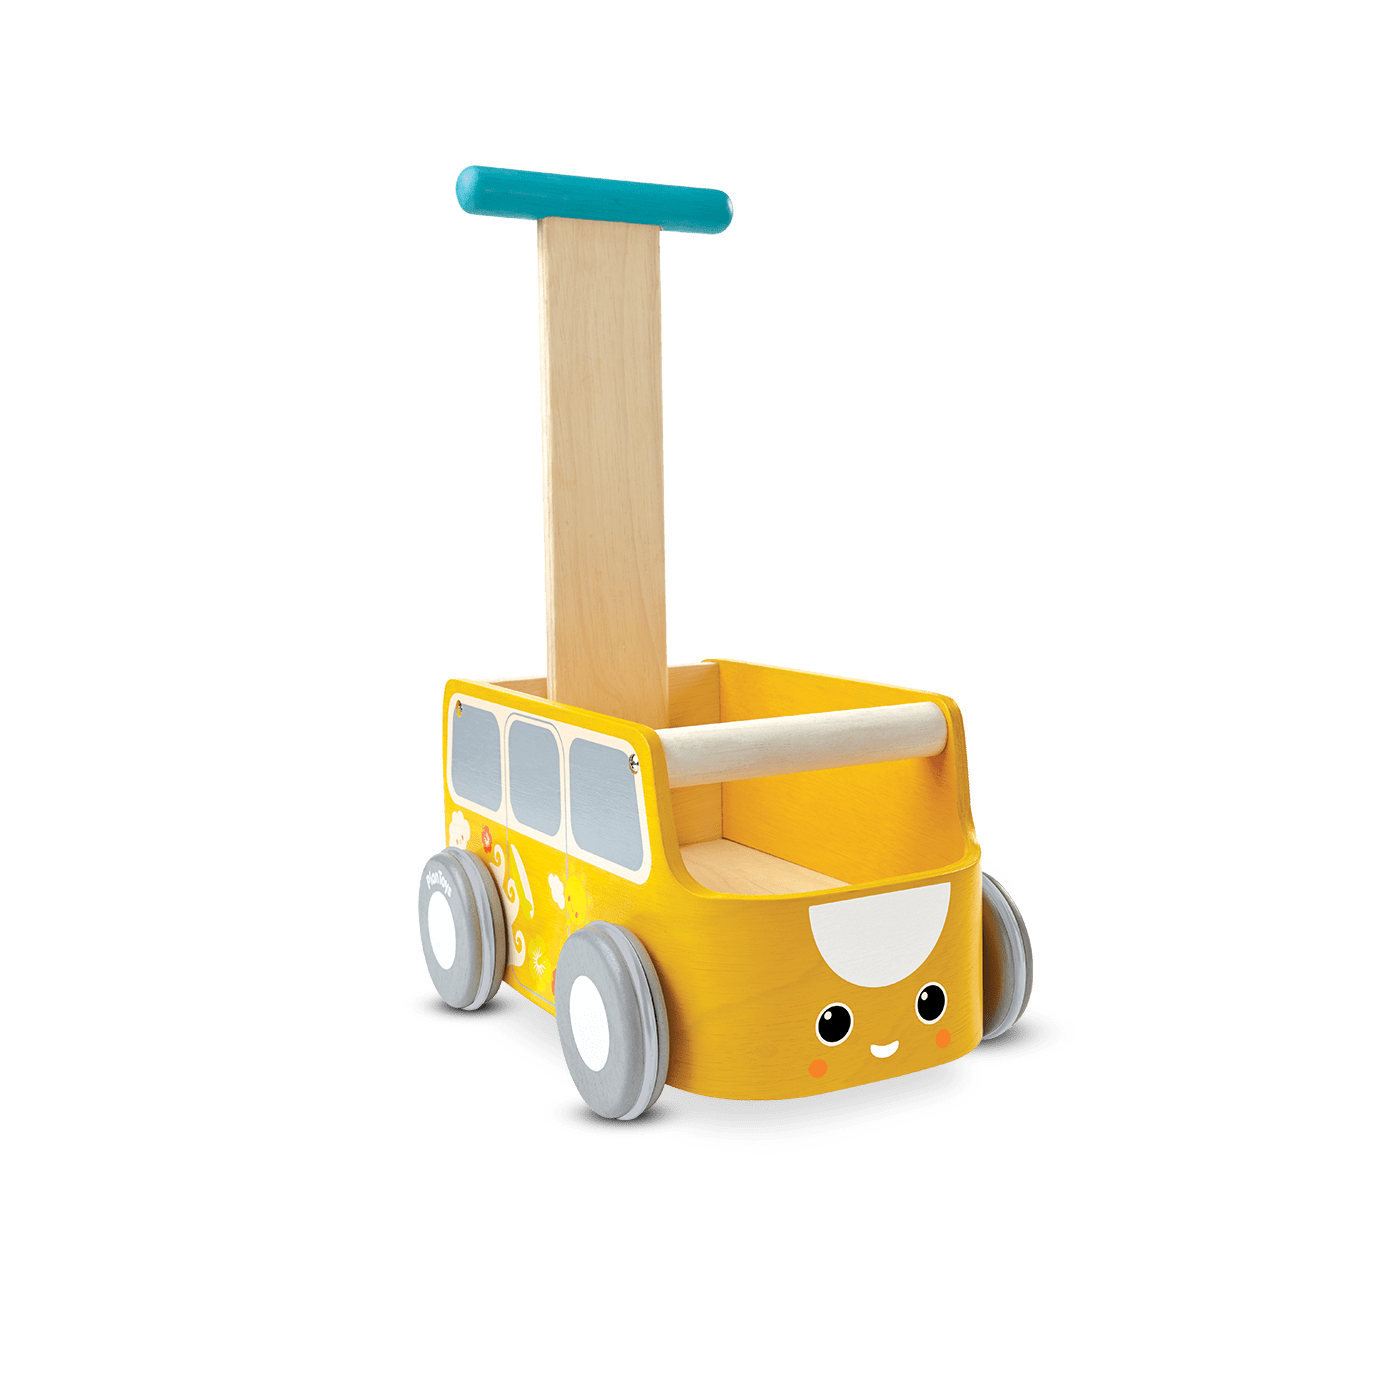 5184_PlanToys_VAN_WALKER_-_YELLOW_Push_and_Pull_Gross_Motor_Coordination_Imagination_12m_Wooden_toys_Education_toys_Safety_Toys_Non-toxic_0.png